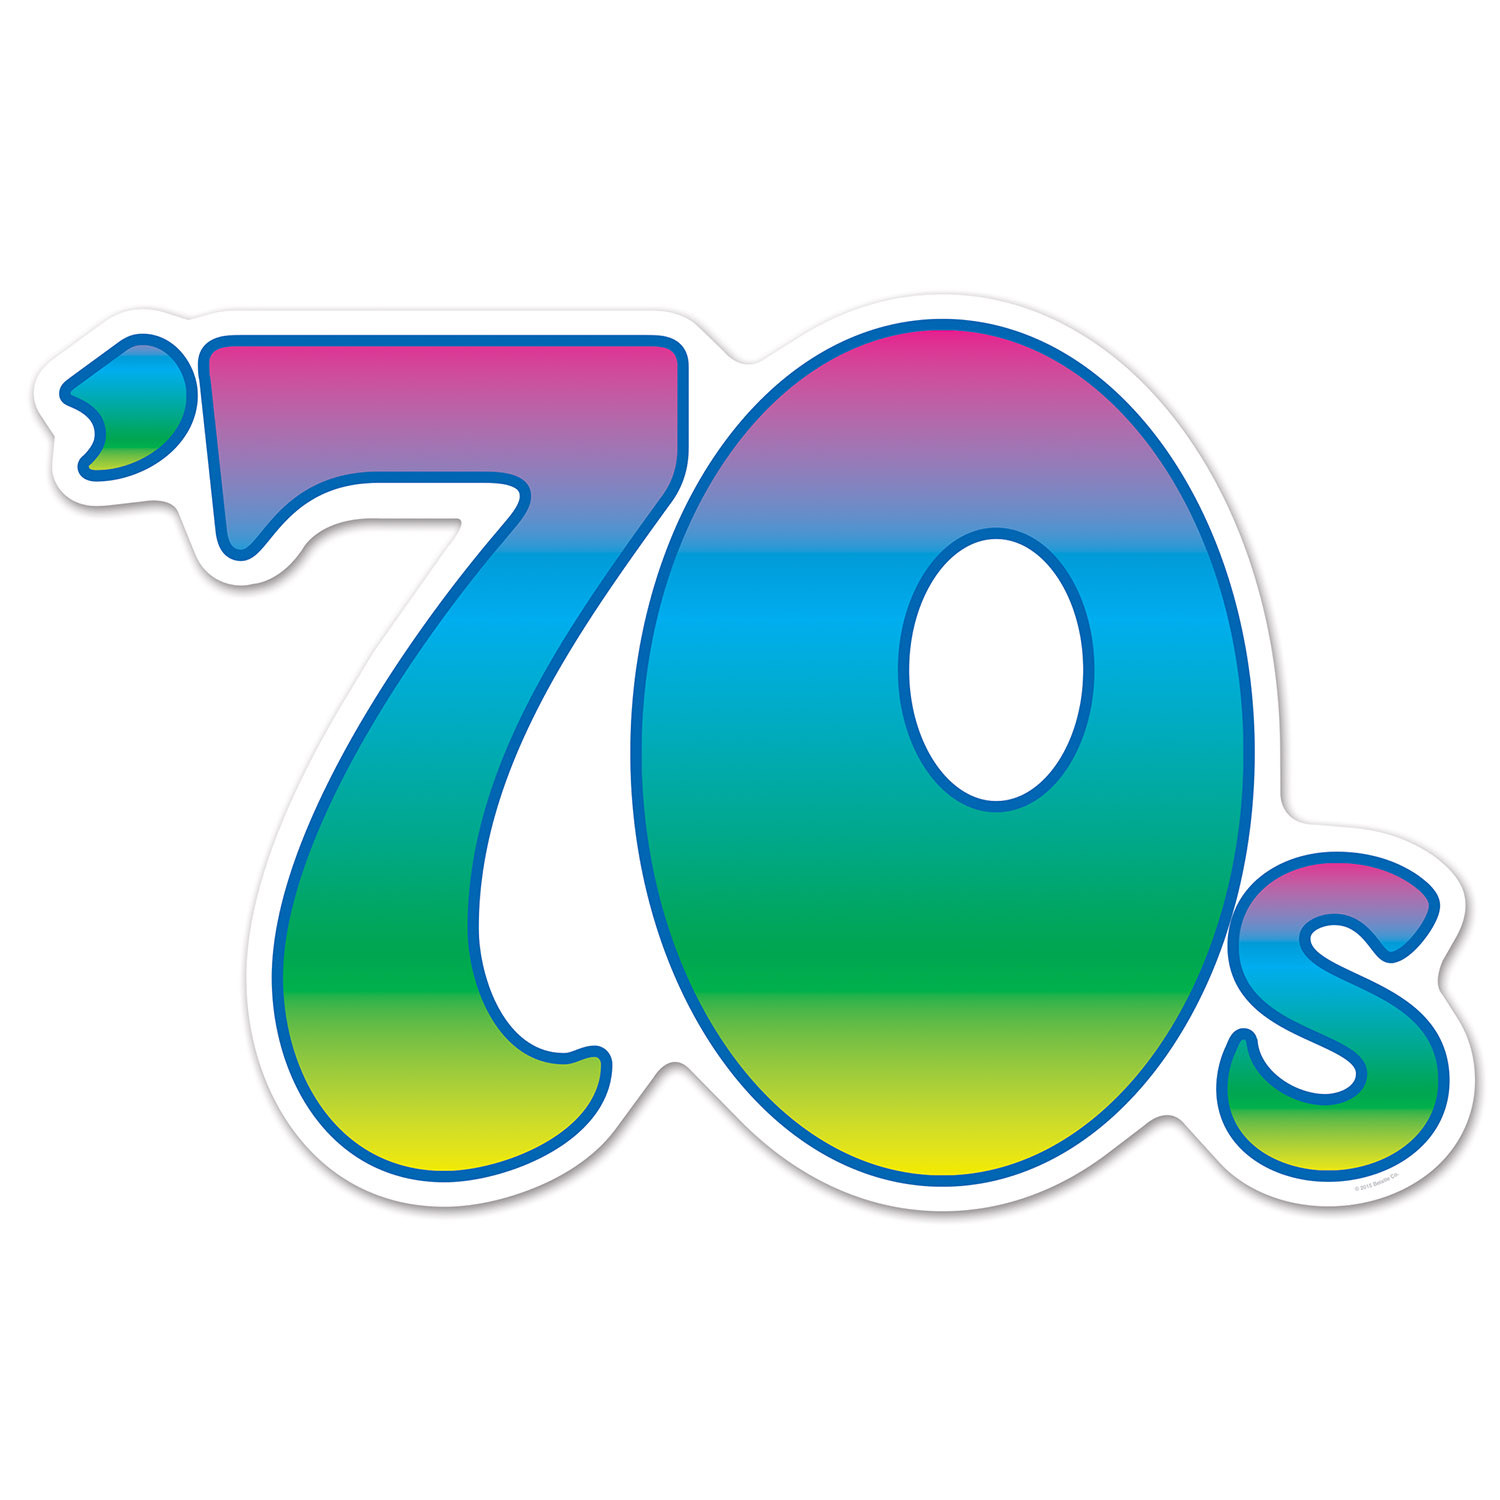 1970 s clipart graphic library library 1970 S Clipart 20 - 1500 X 1500 - Making-The-Web.com graphic library library